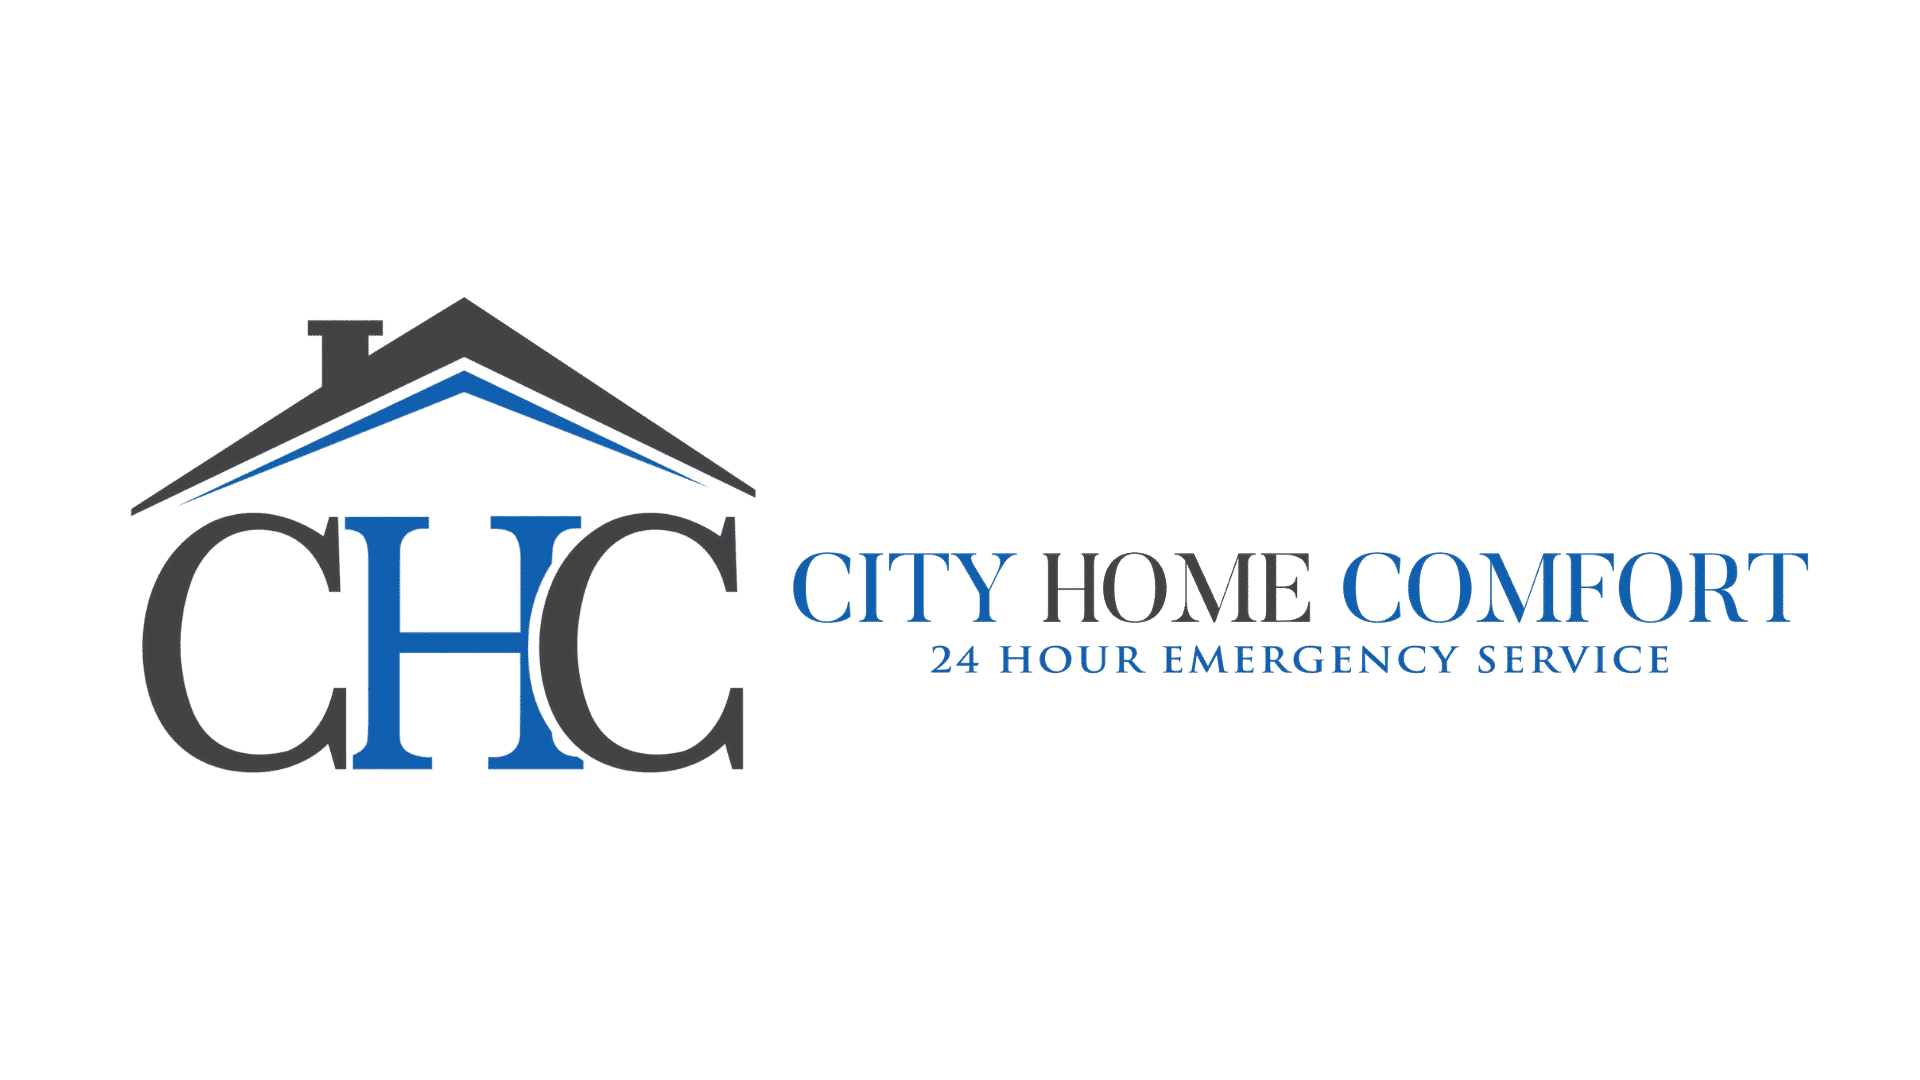 City Home Comfort - 24-hour emergency service